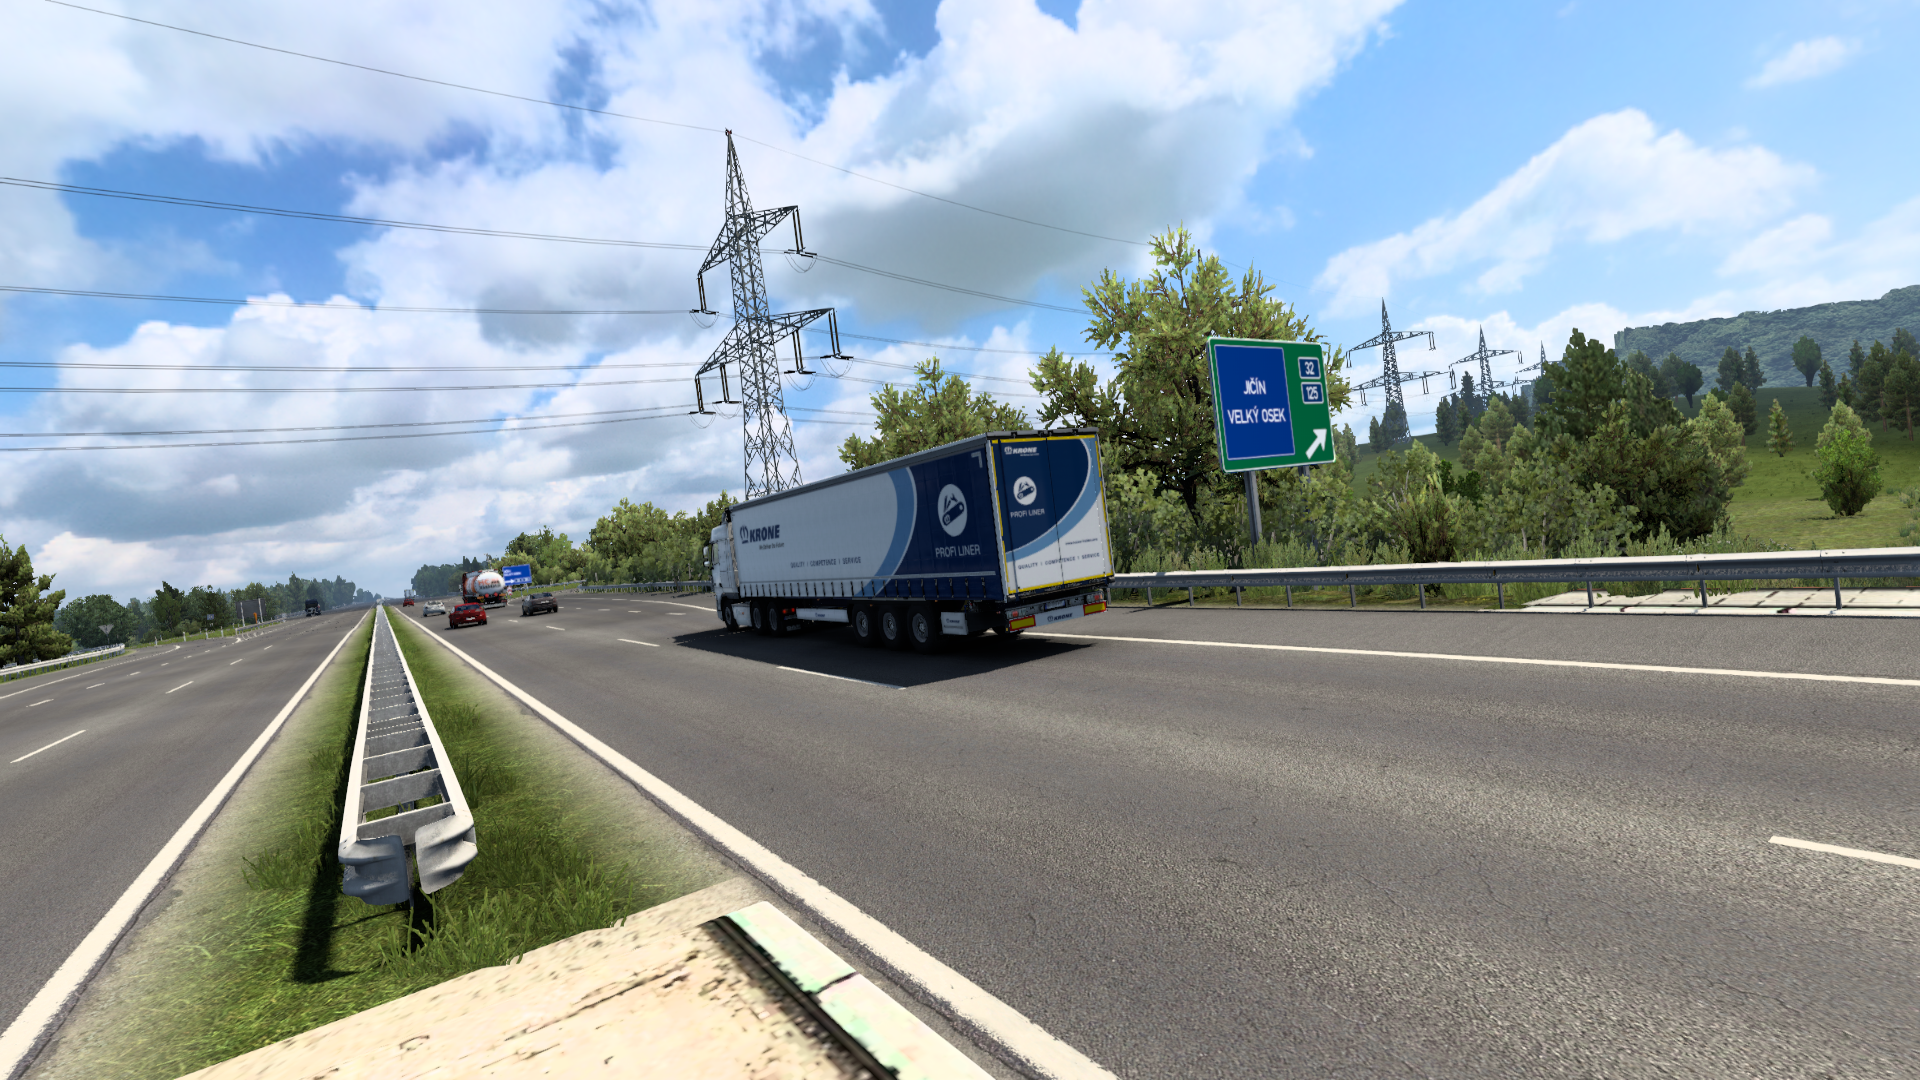 ets2_20211018_213317_00.png